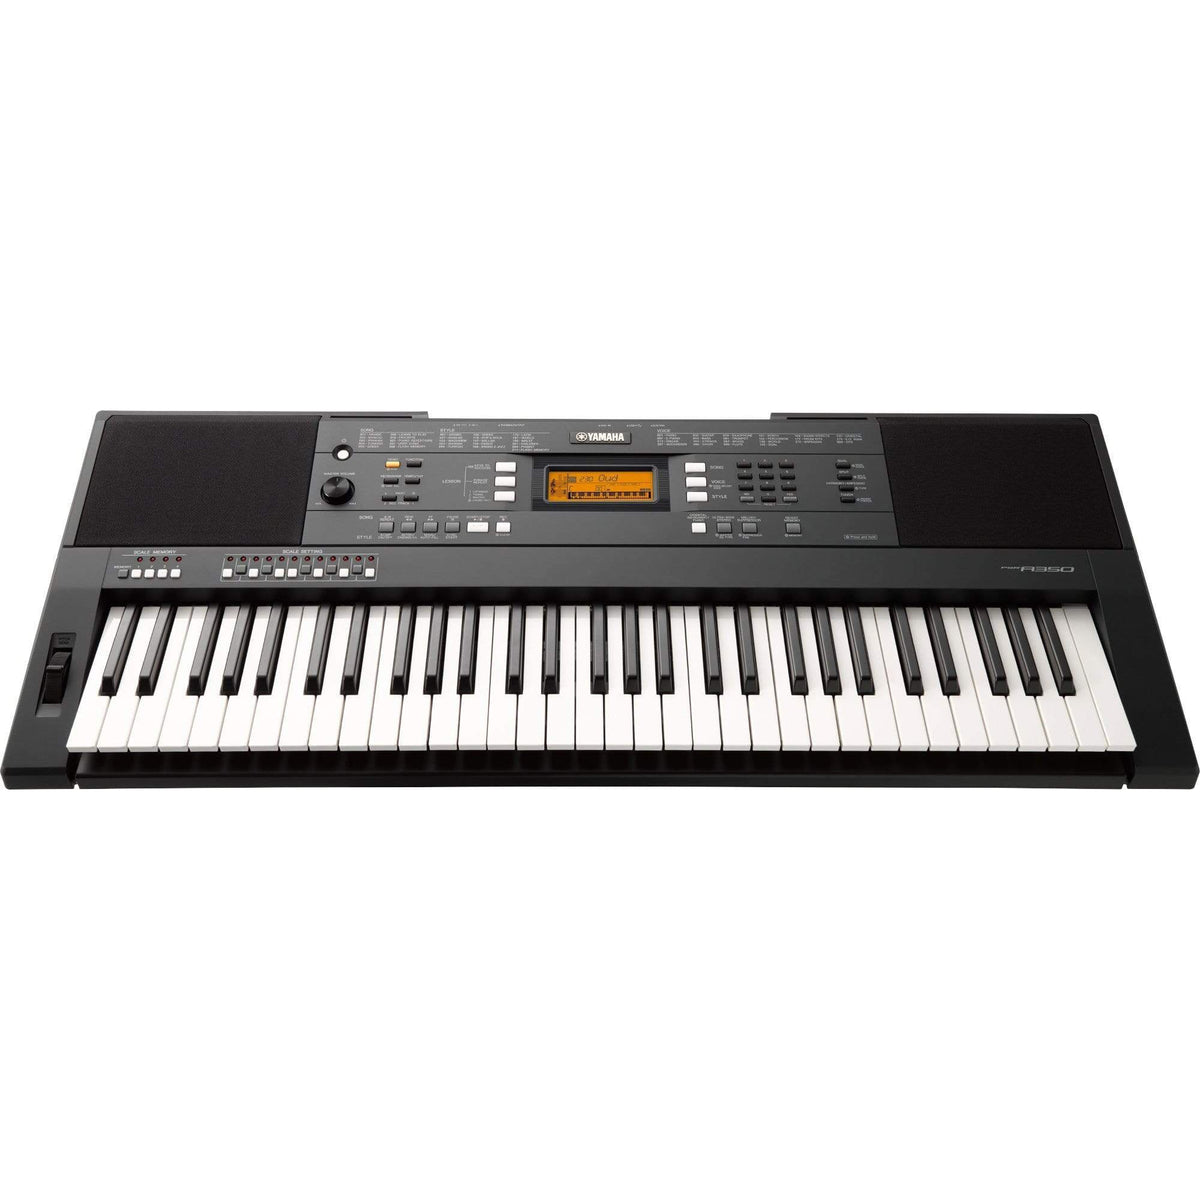 Yamaha Key Instruments Yamaha PSRA350 61-Key Arabic Keyboard